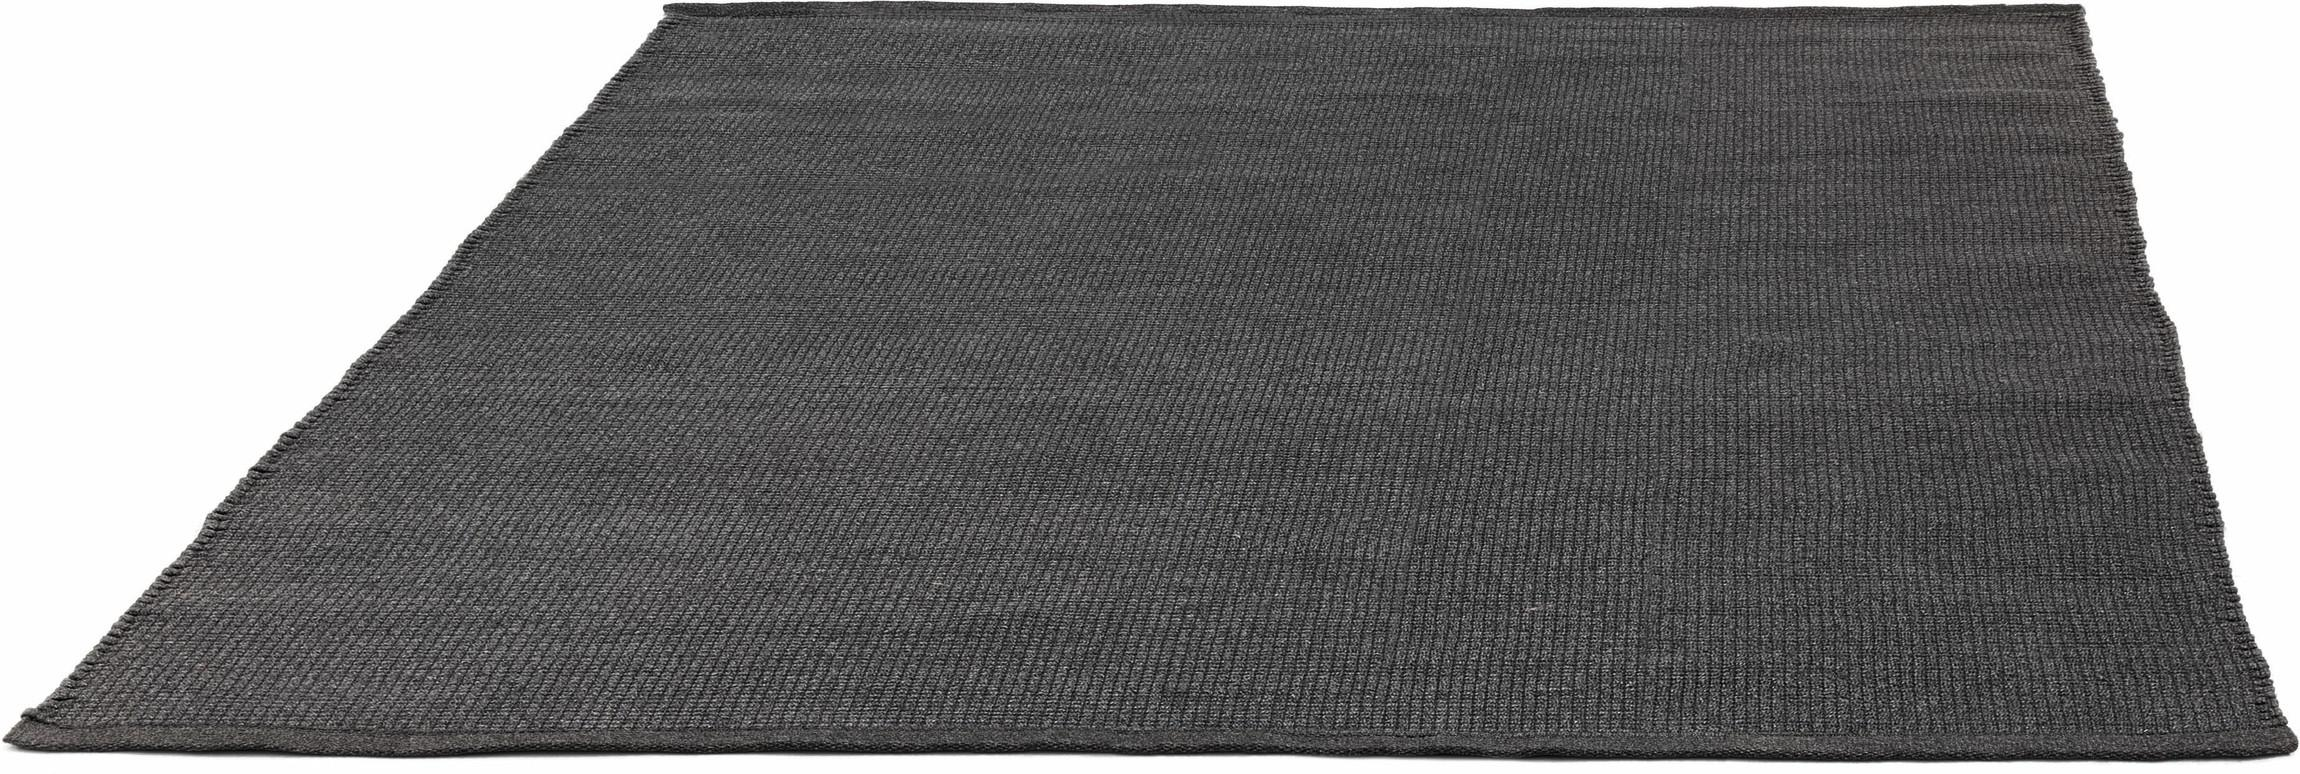 Rugs Linear 170x230 anthracite